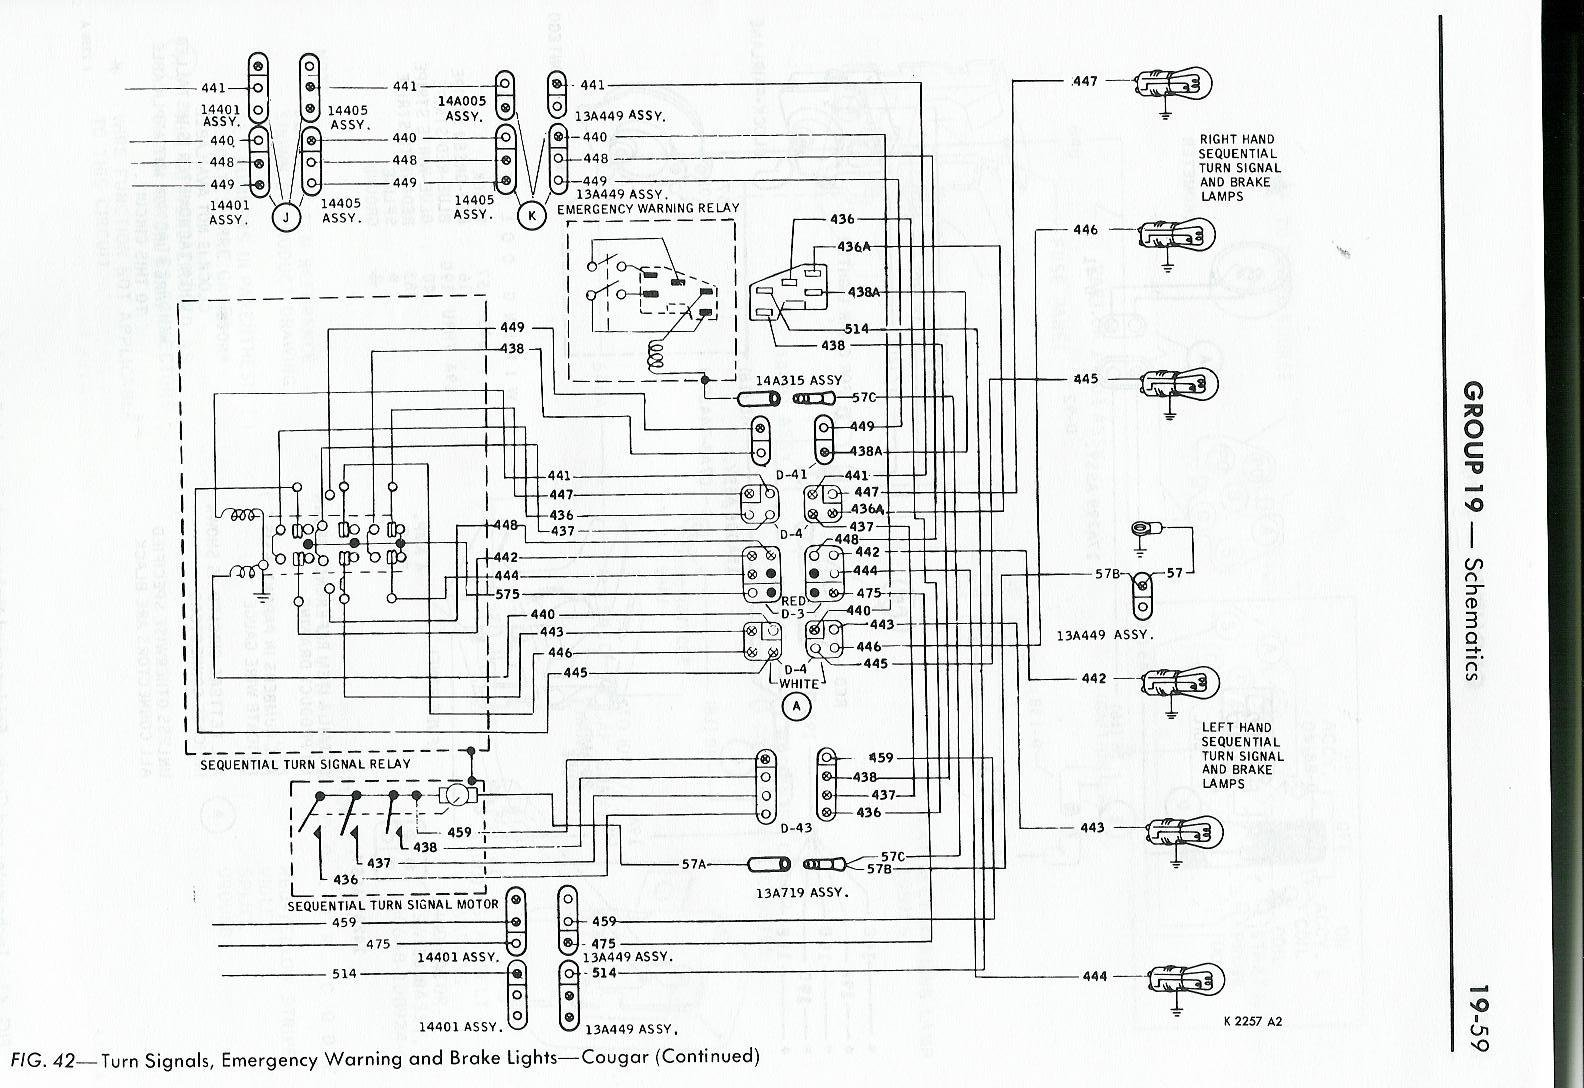 Roadrunner Wiring Diagram Library 1971 Road Runner 72 1969